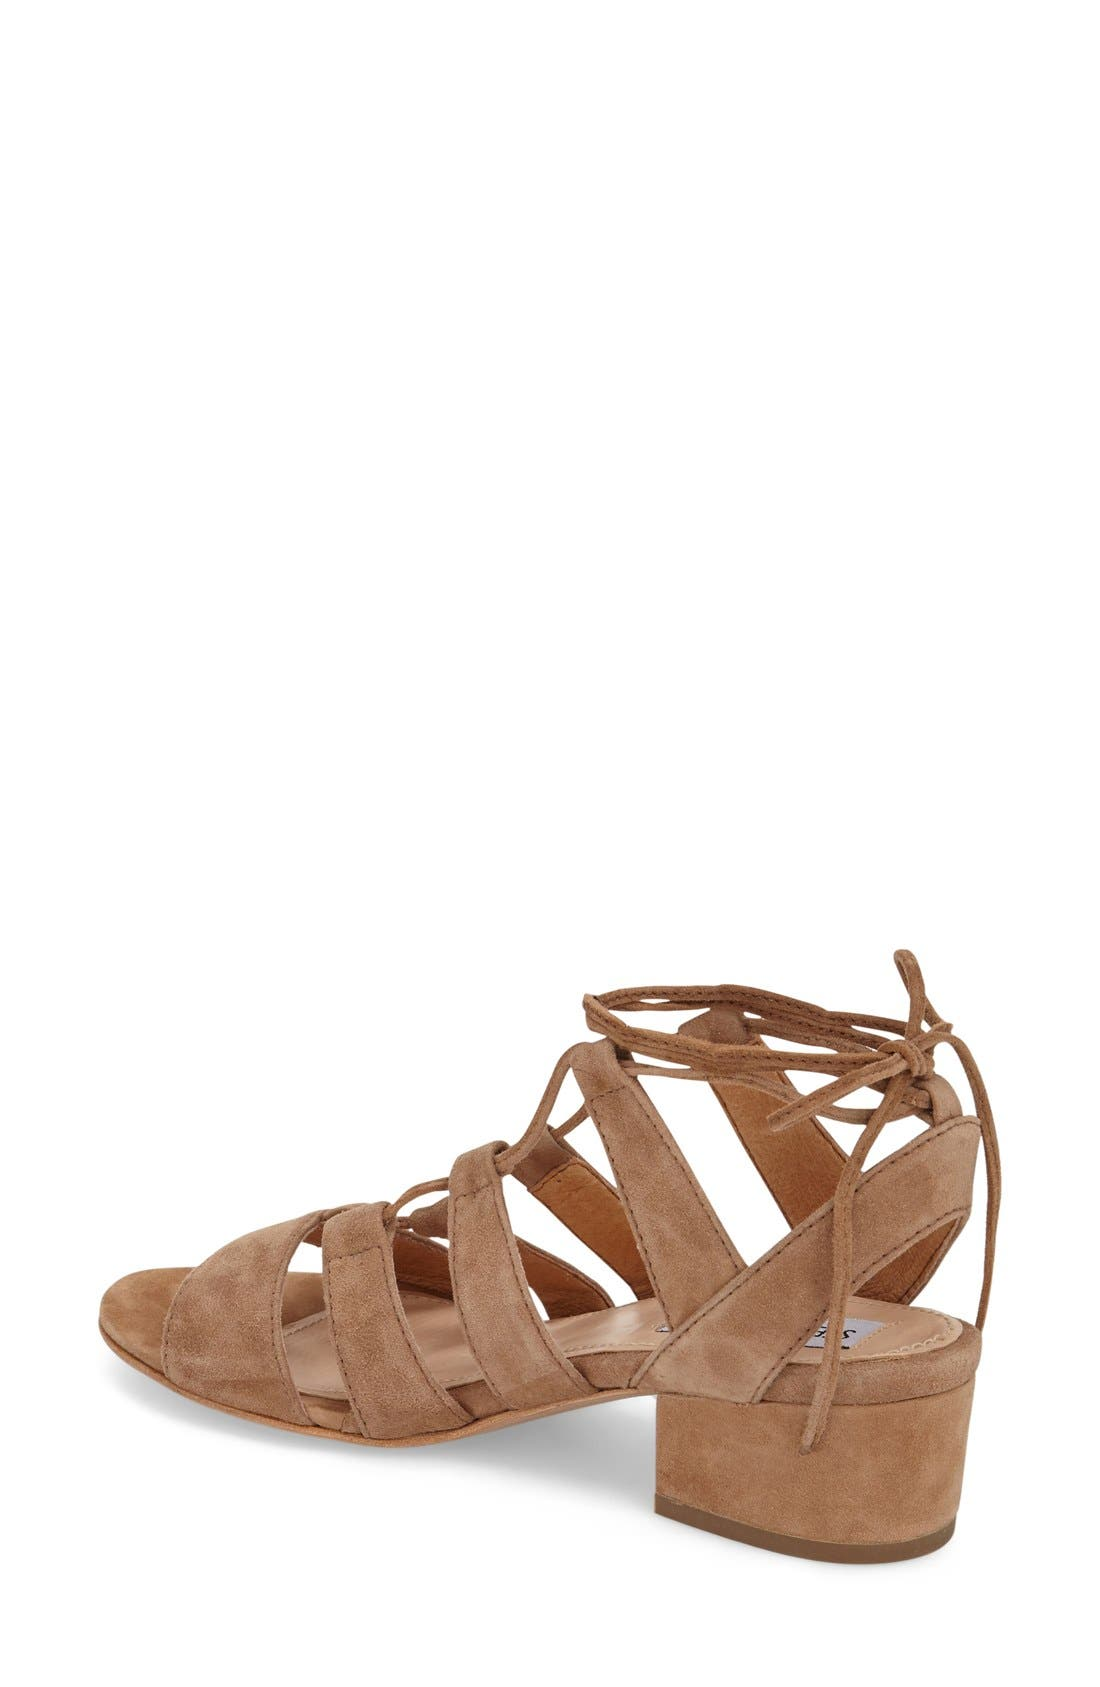 Alternate Image 2  - Steve Madden 'Kitty' Ghillie Sandal (Women)